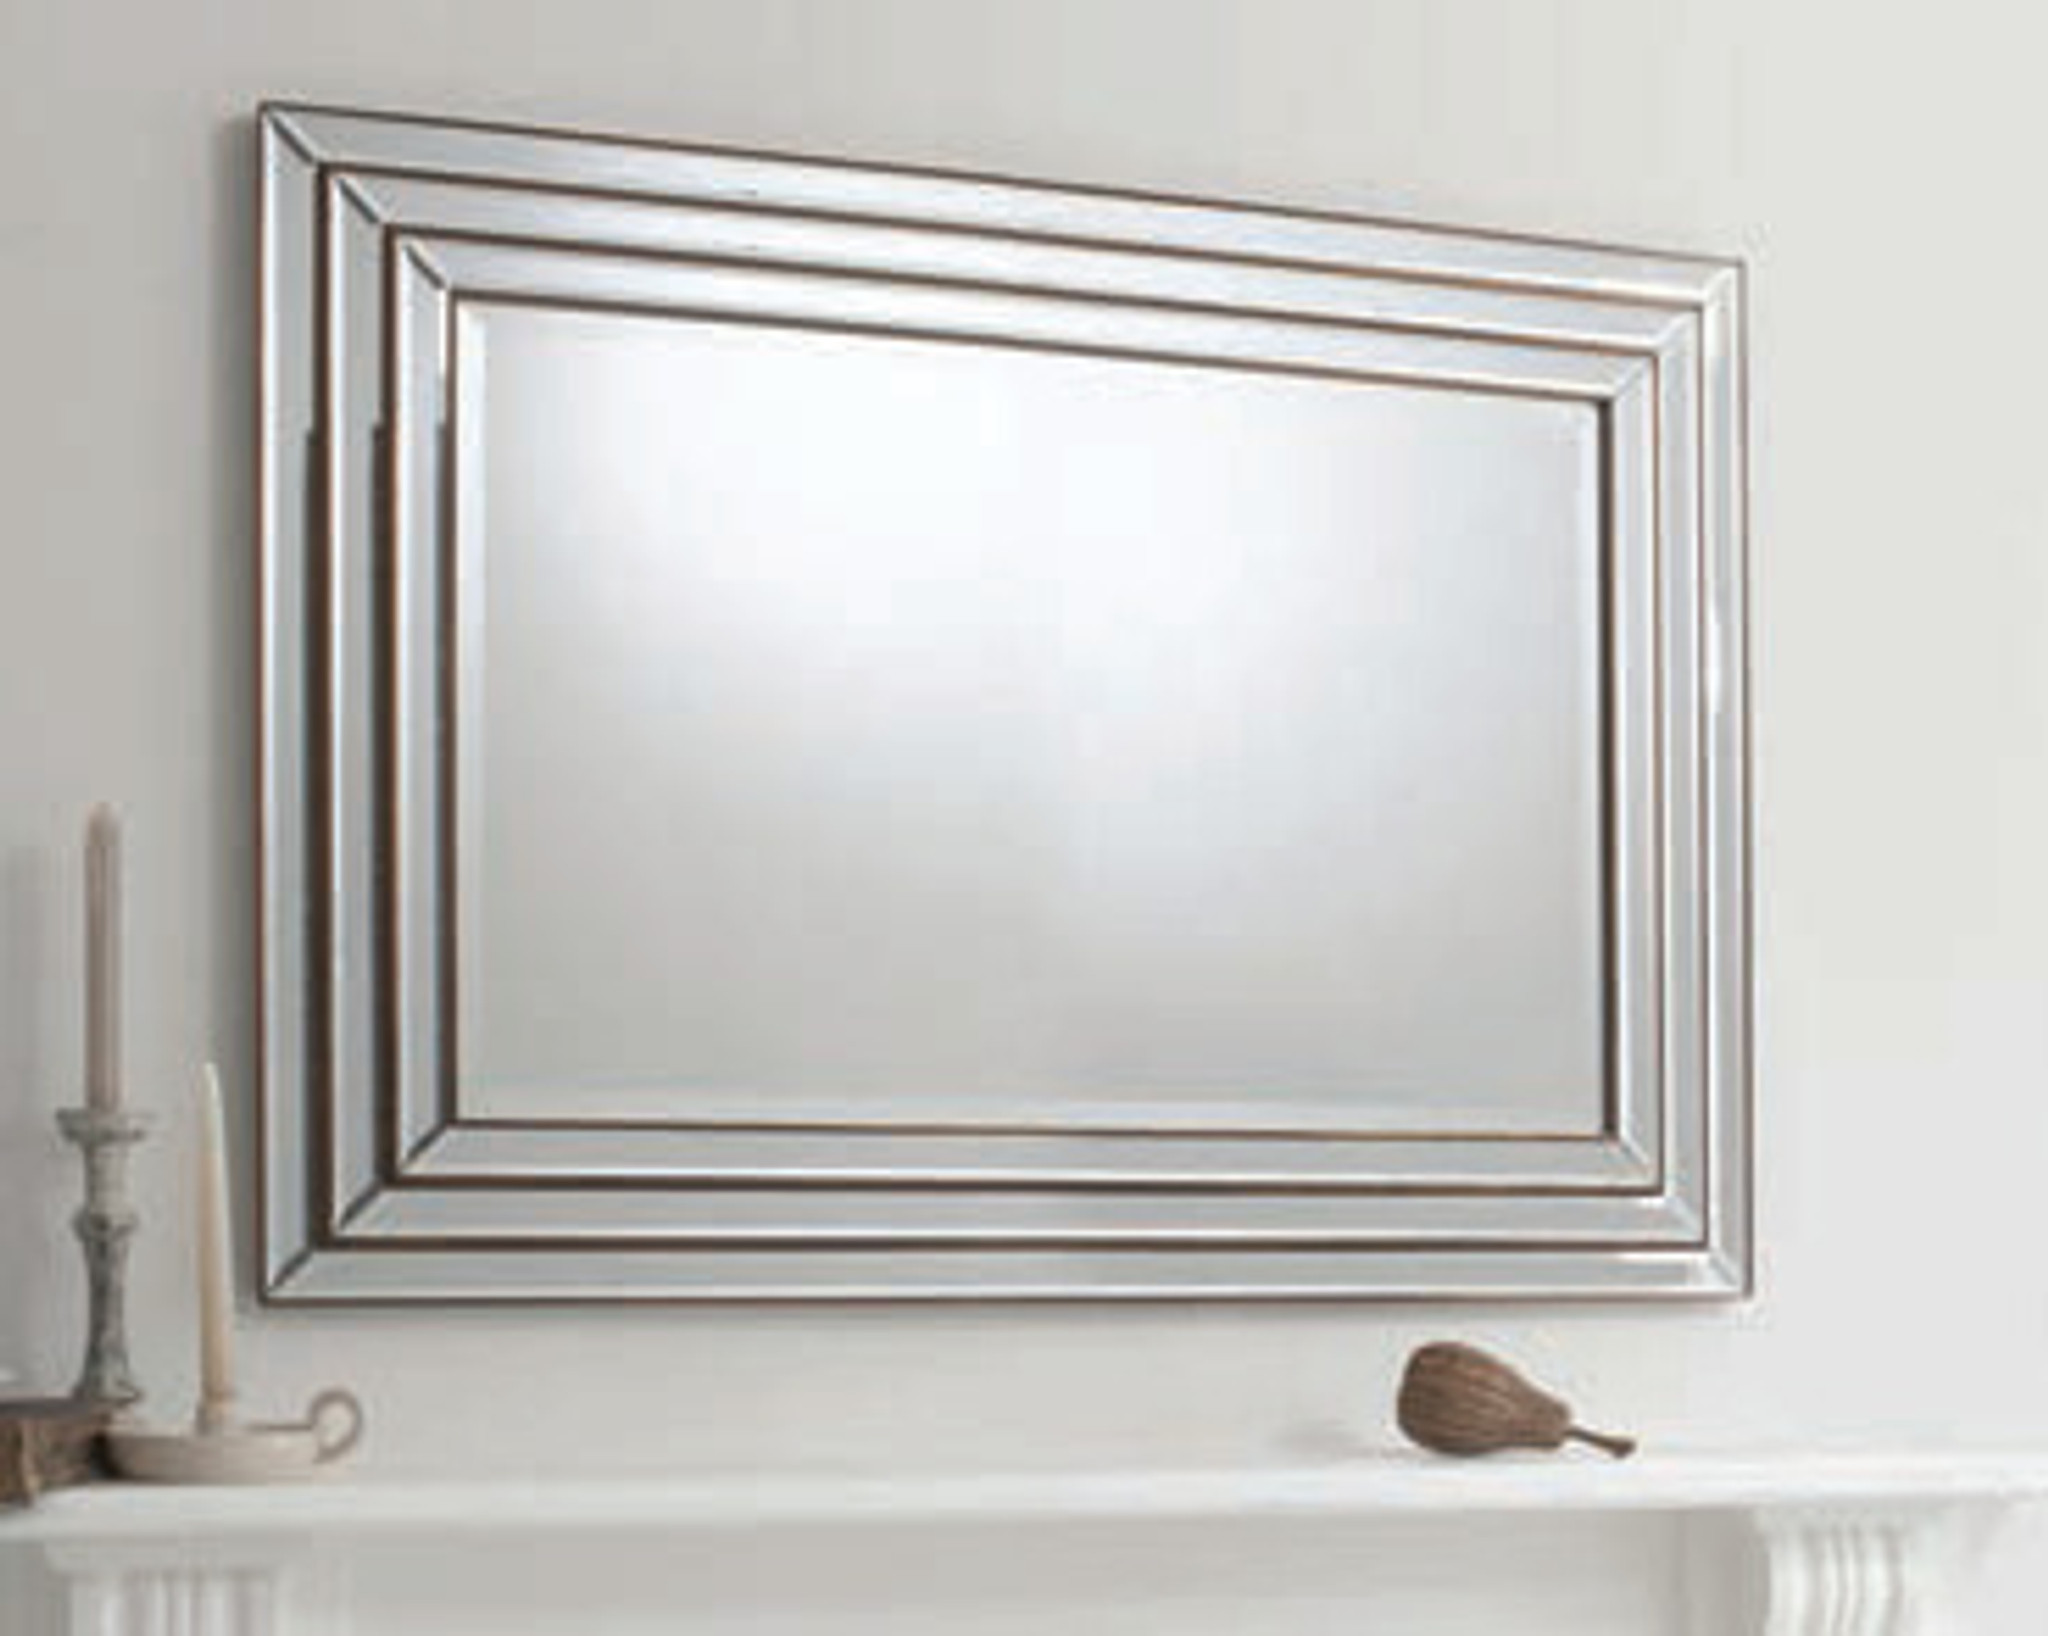 chambery mirror bronze 46x34 gallery direct gallery direct maison living. Black Bedroom Furniture Sets. Home Design Ideas